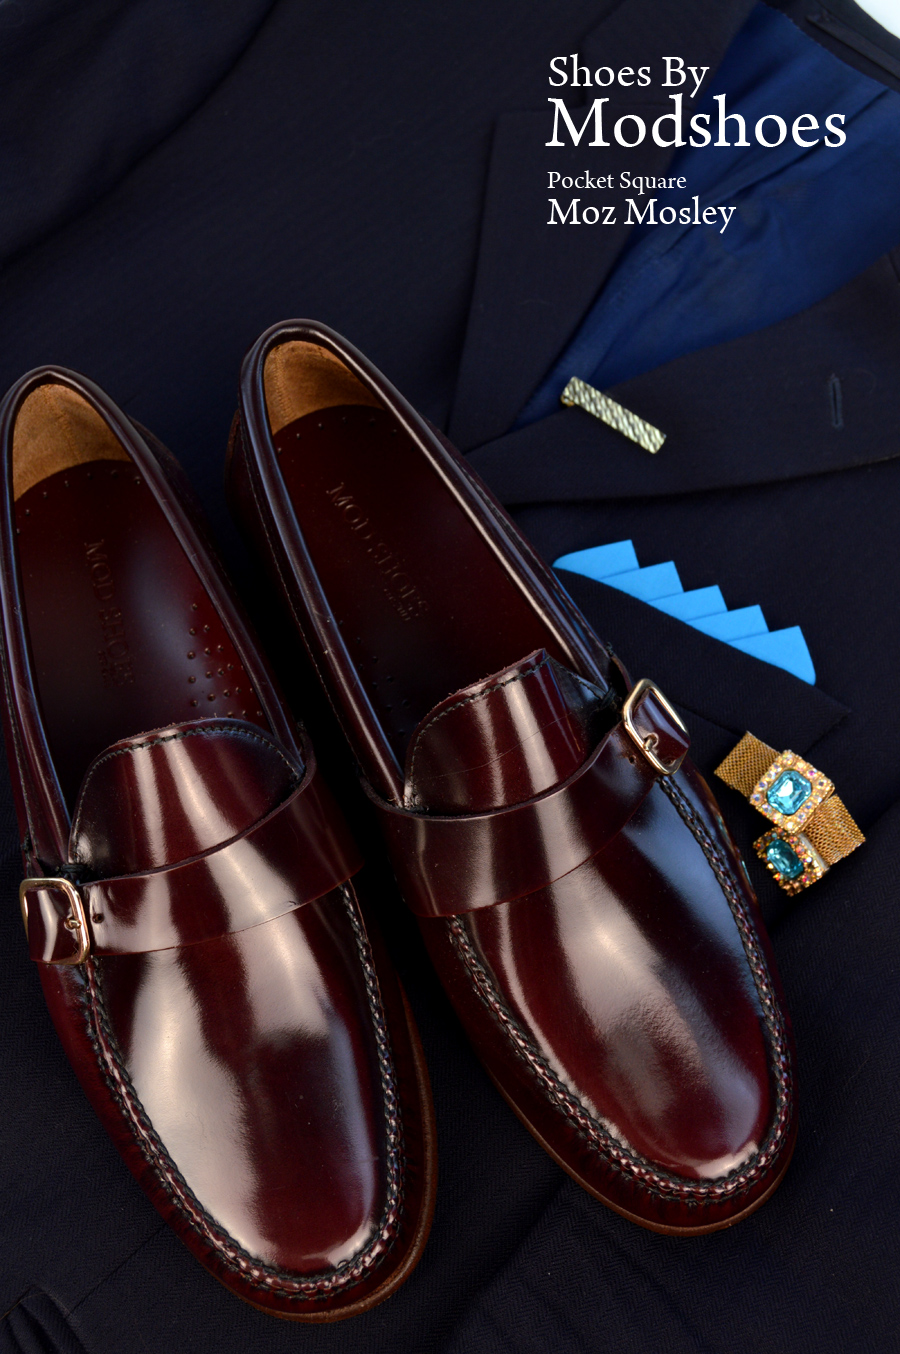 modshoes-oxblood-loafers-01